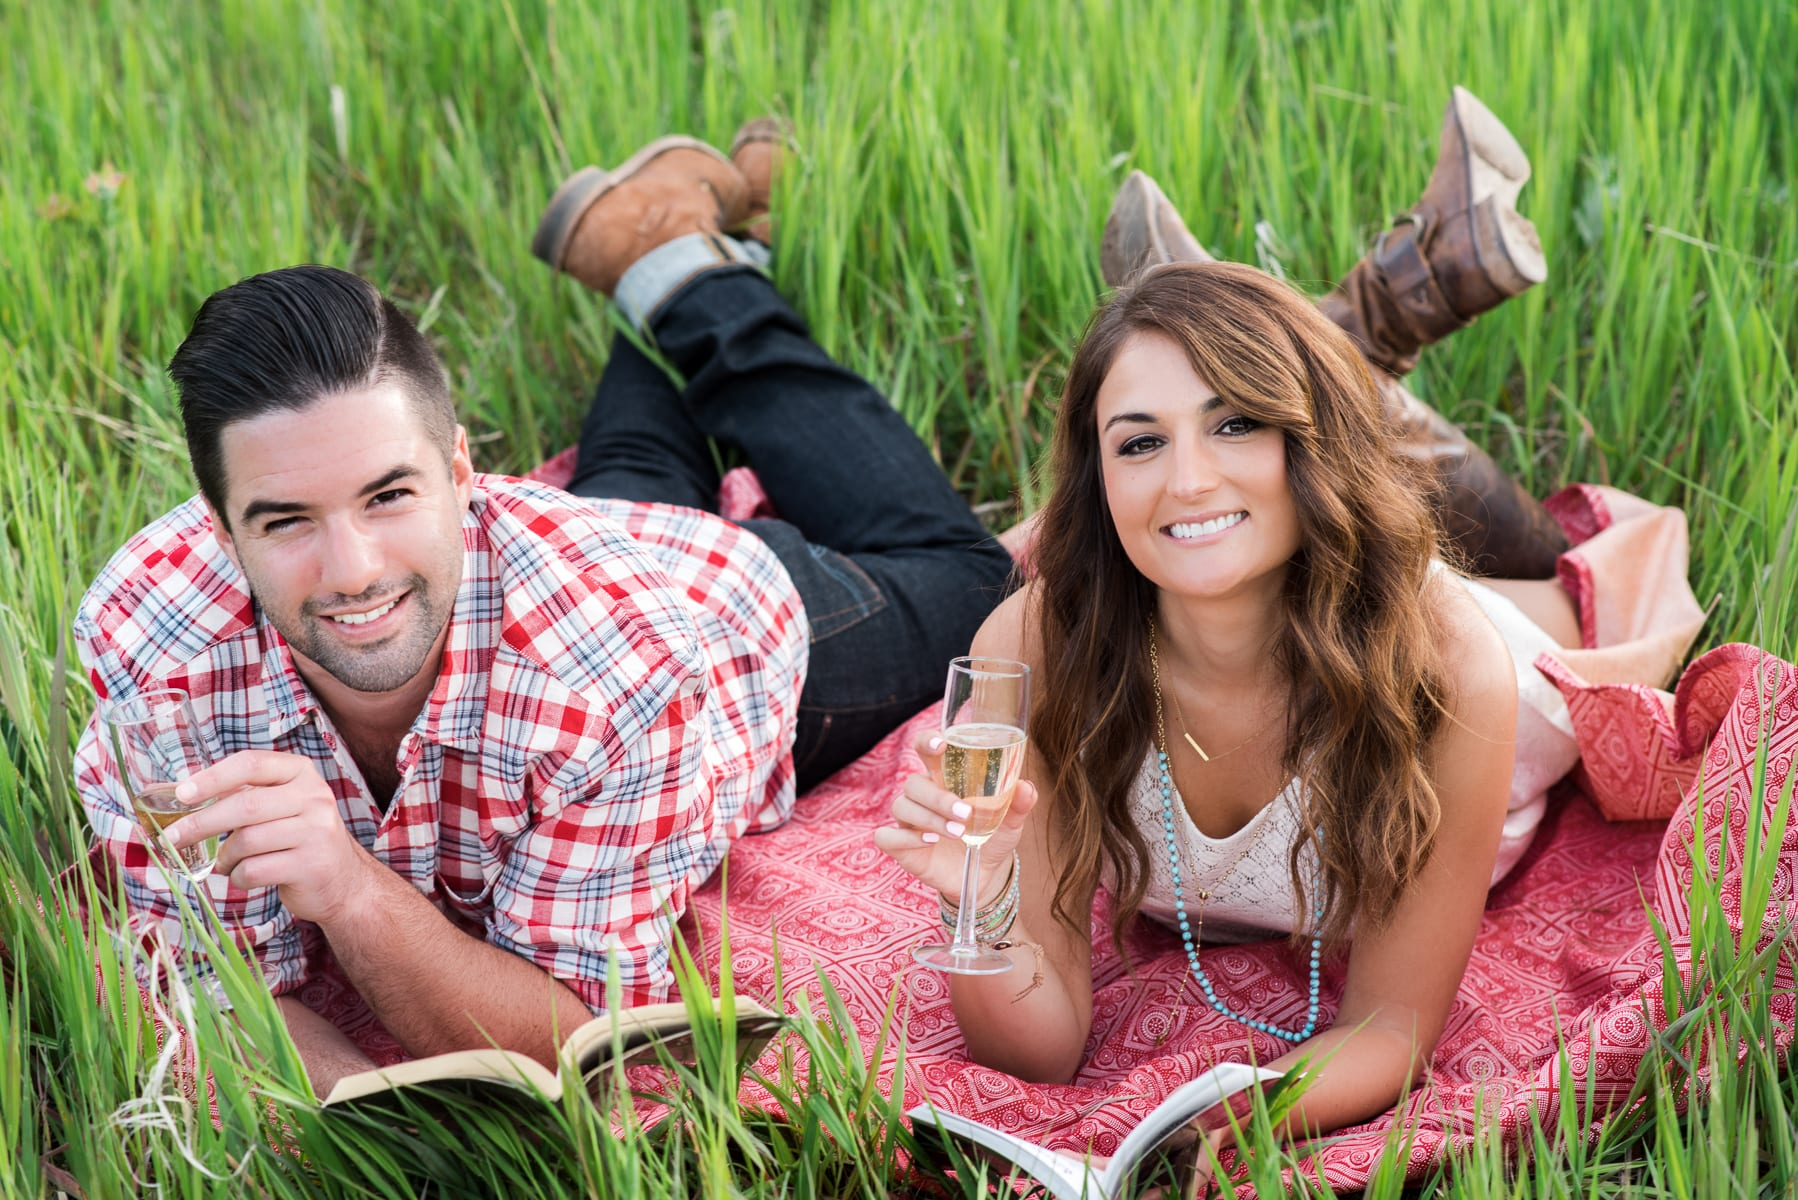 Engagement Photo Location Ideas | Denver Engagement Photography | From the Hip Photo